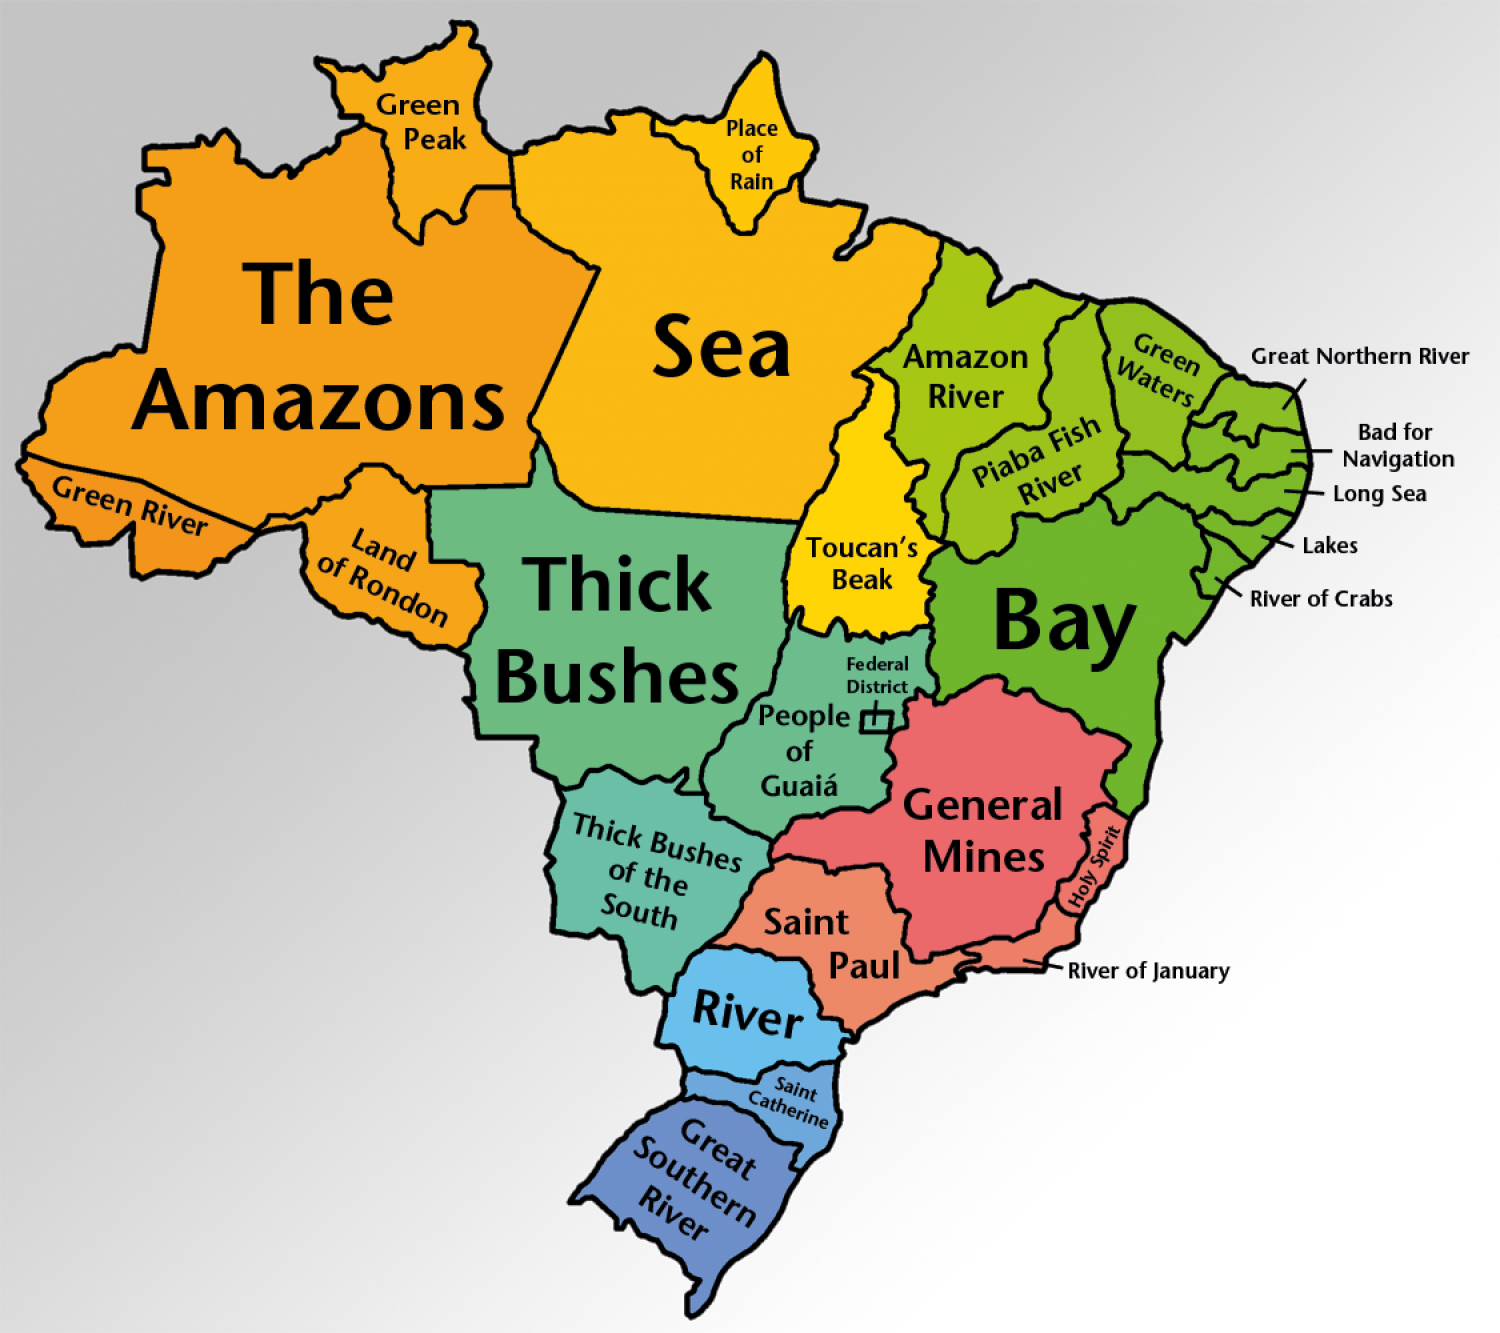 [Imagem: brazilian-state-names-translated_52e6903..._w1500.png]